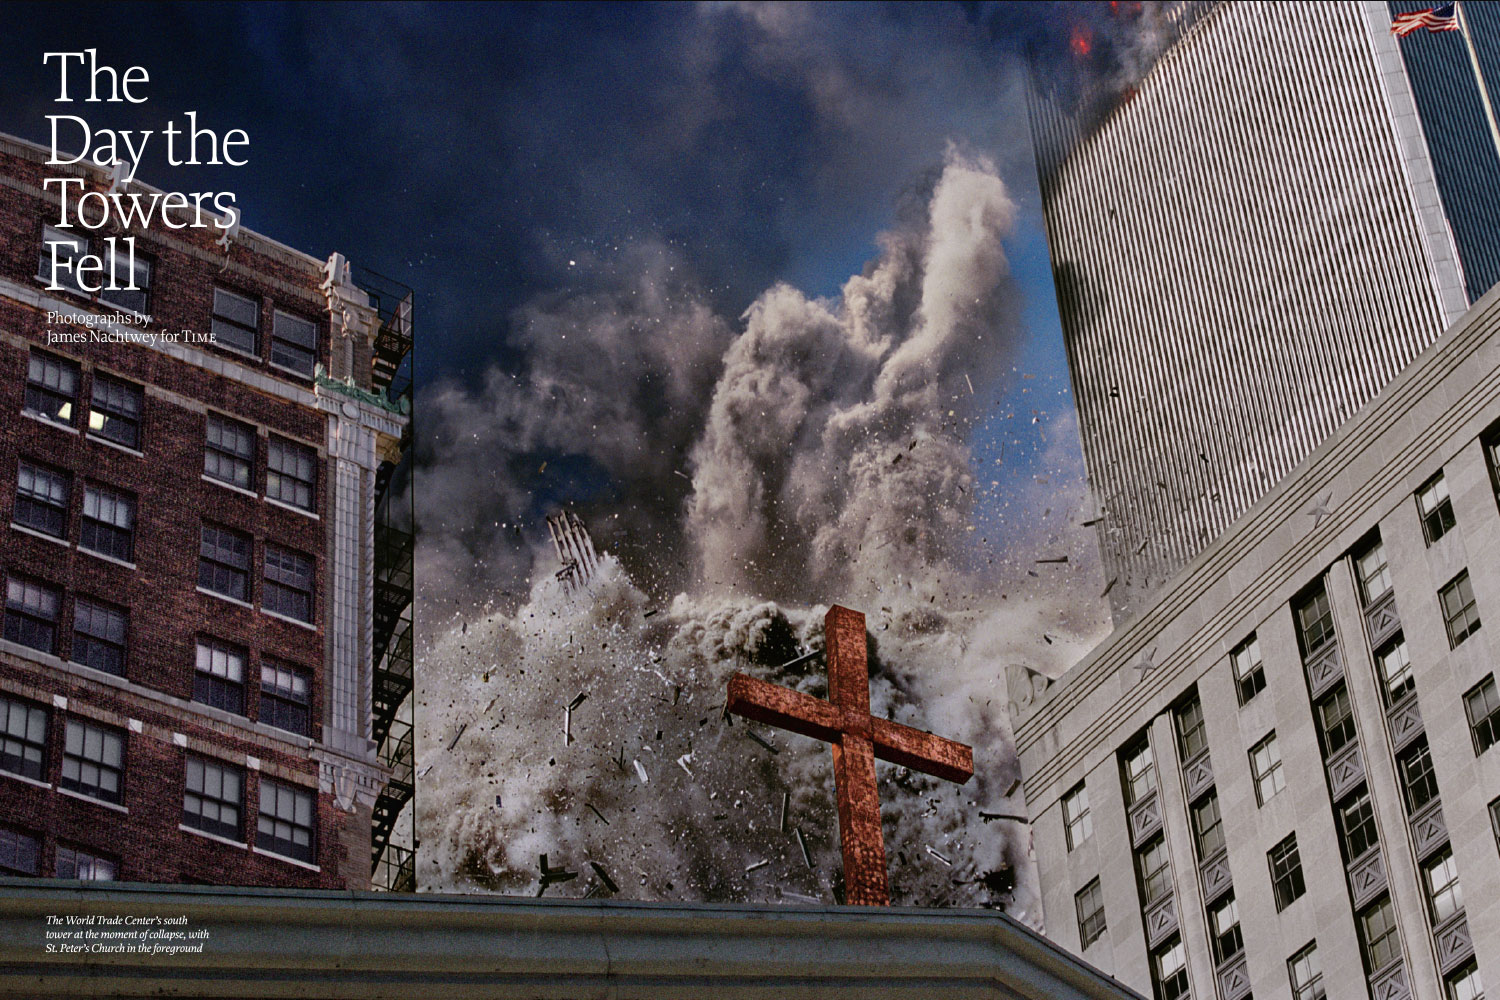 From  The Day the Towers Fell.  September 19, 2011 issue.